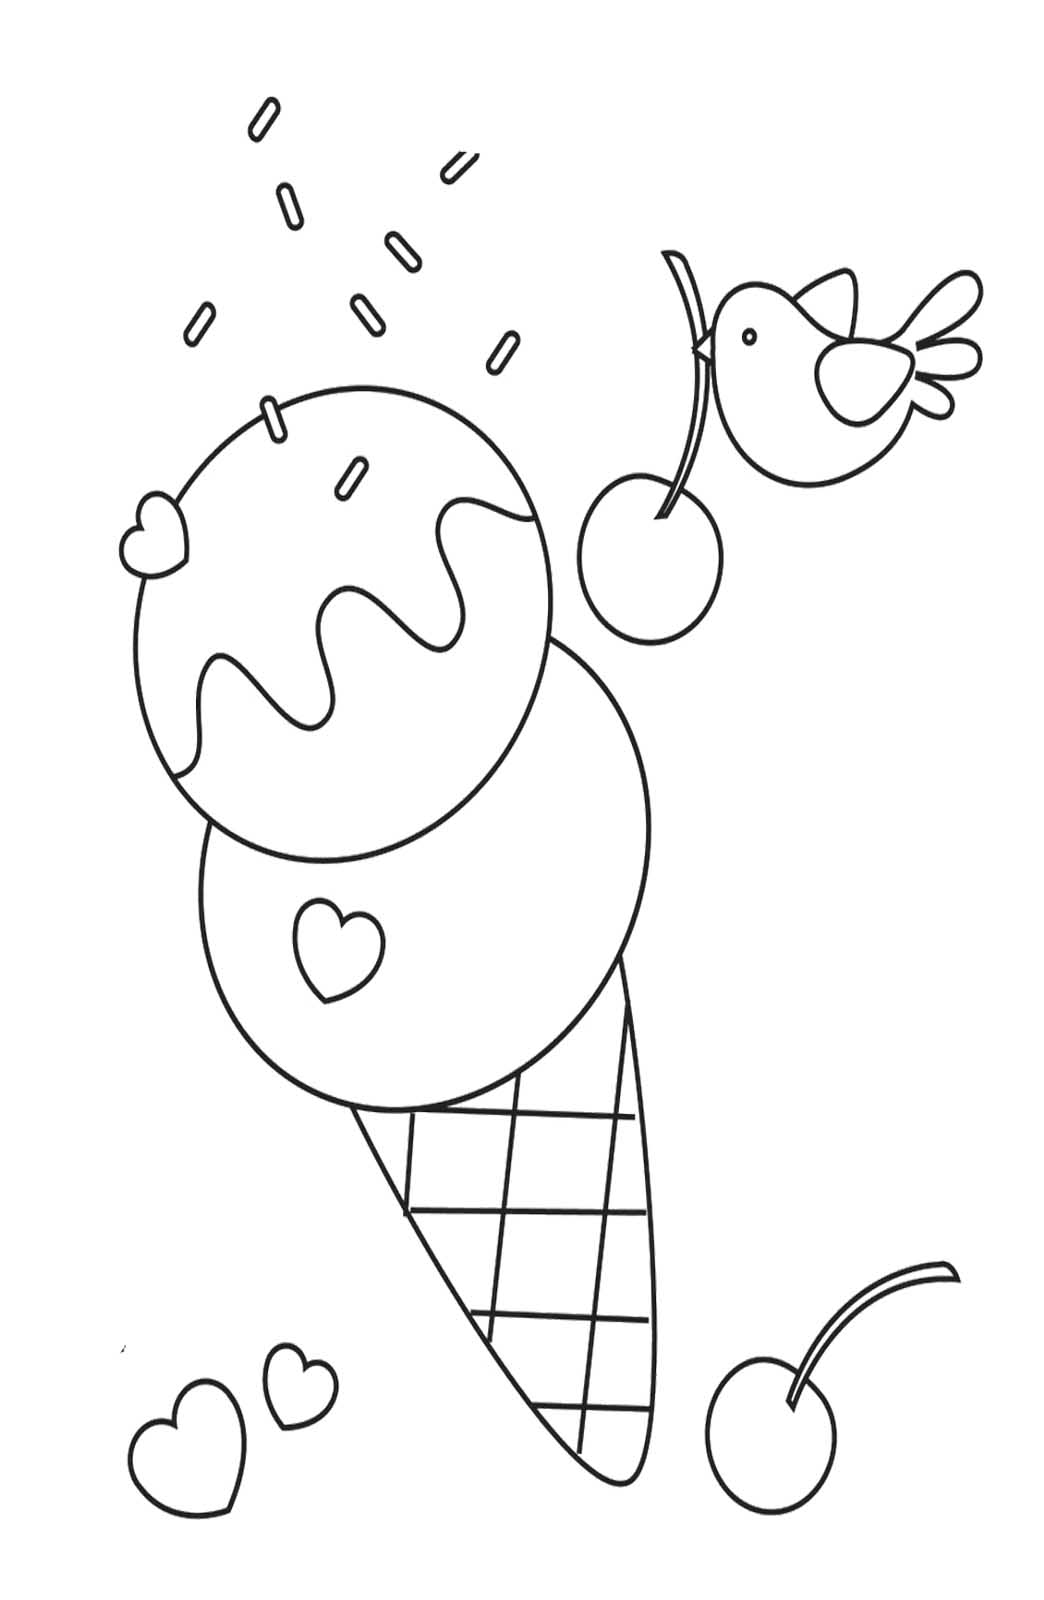 ice cream coloring pages free beautiful ice cream coloring page ice cream coloring ice coloring free cream pages